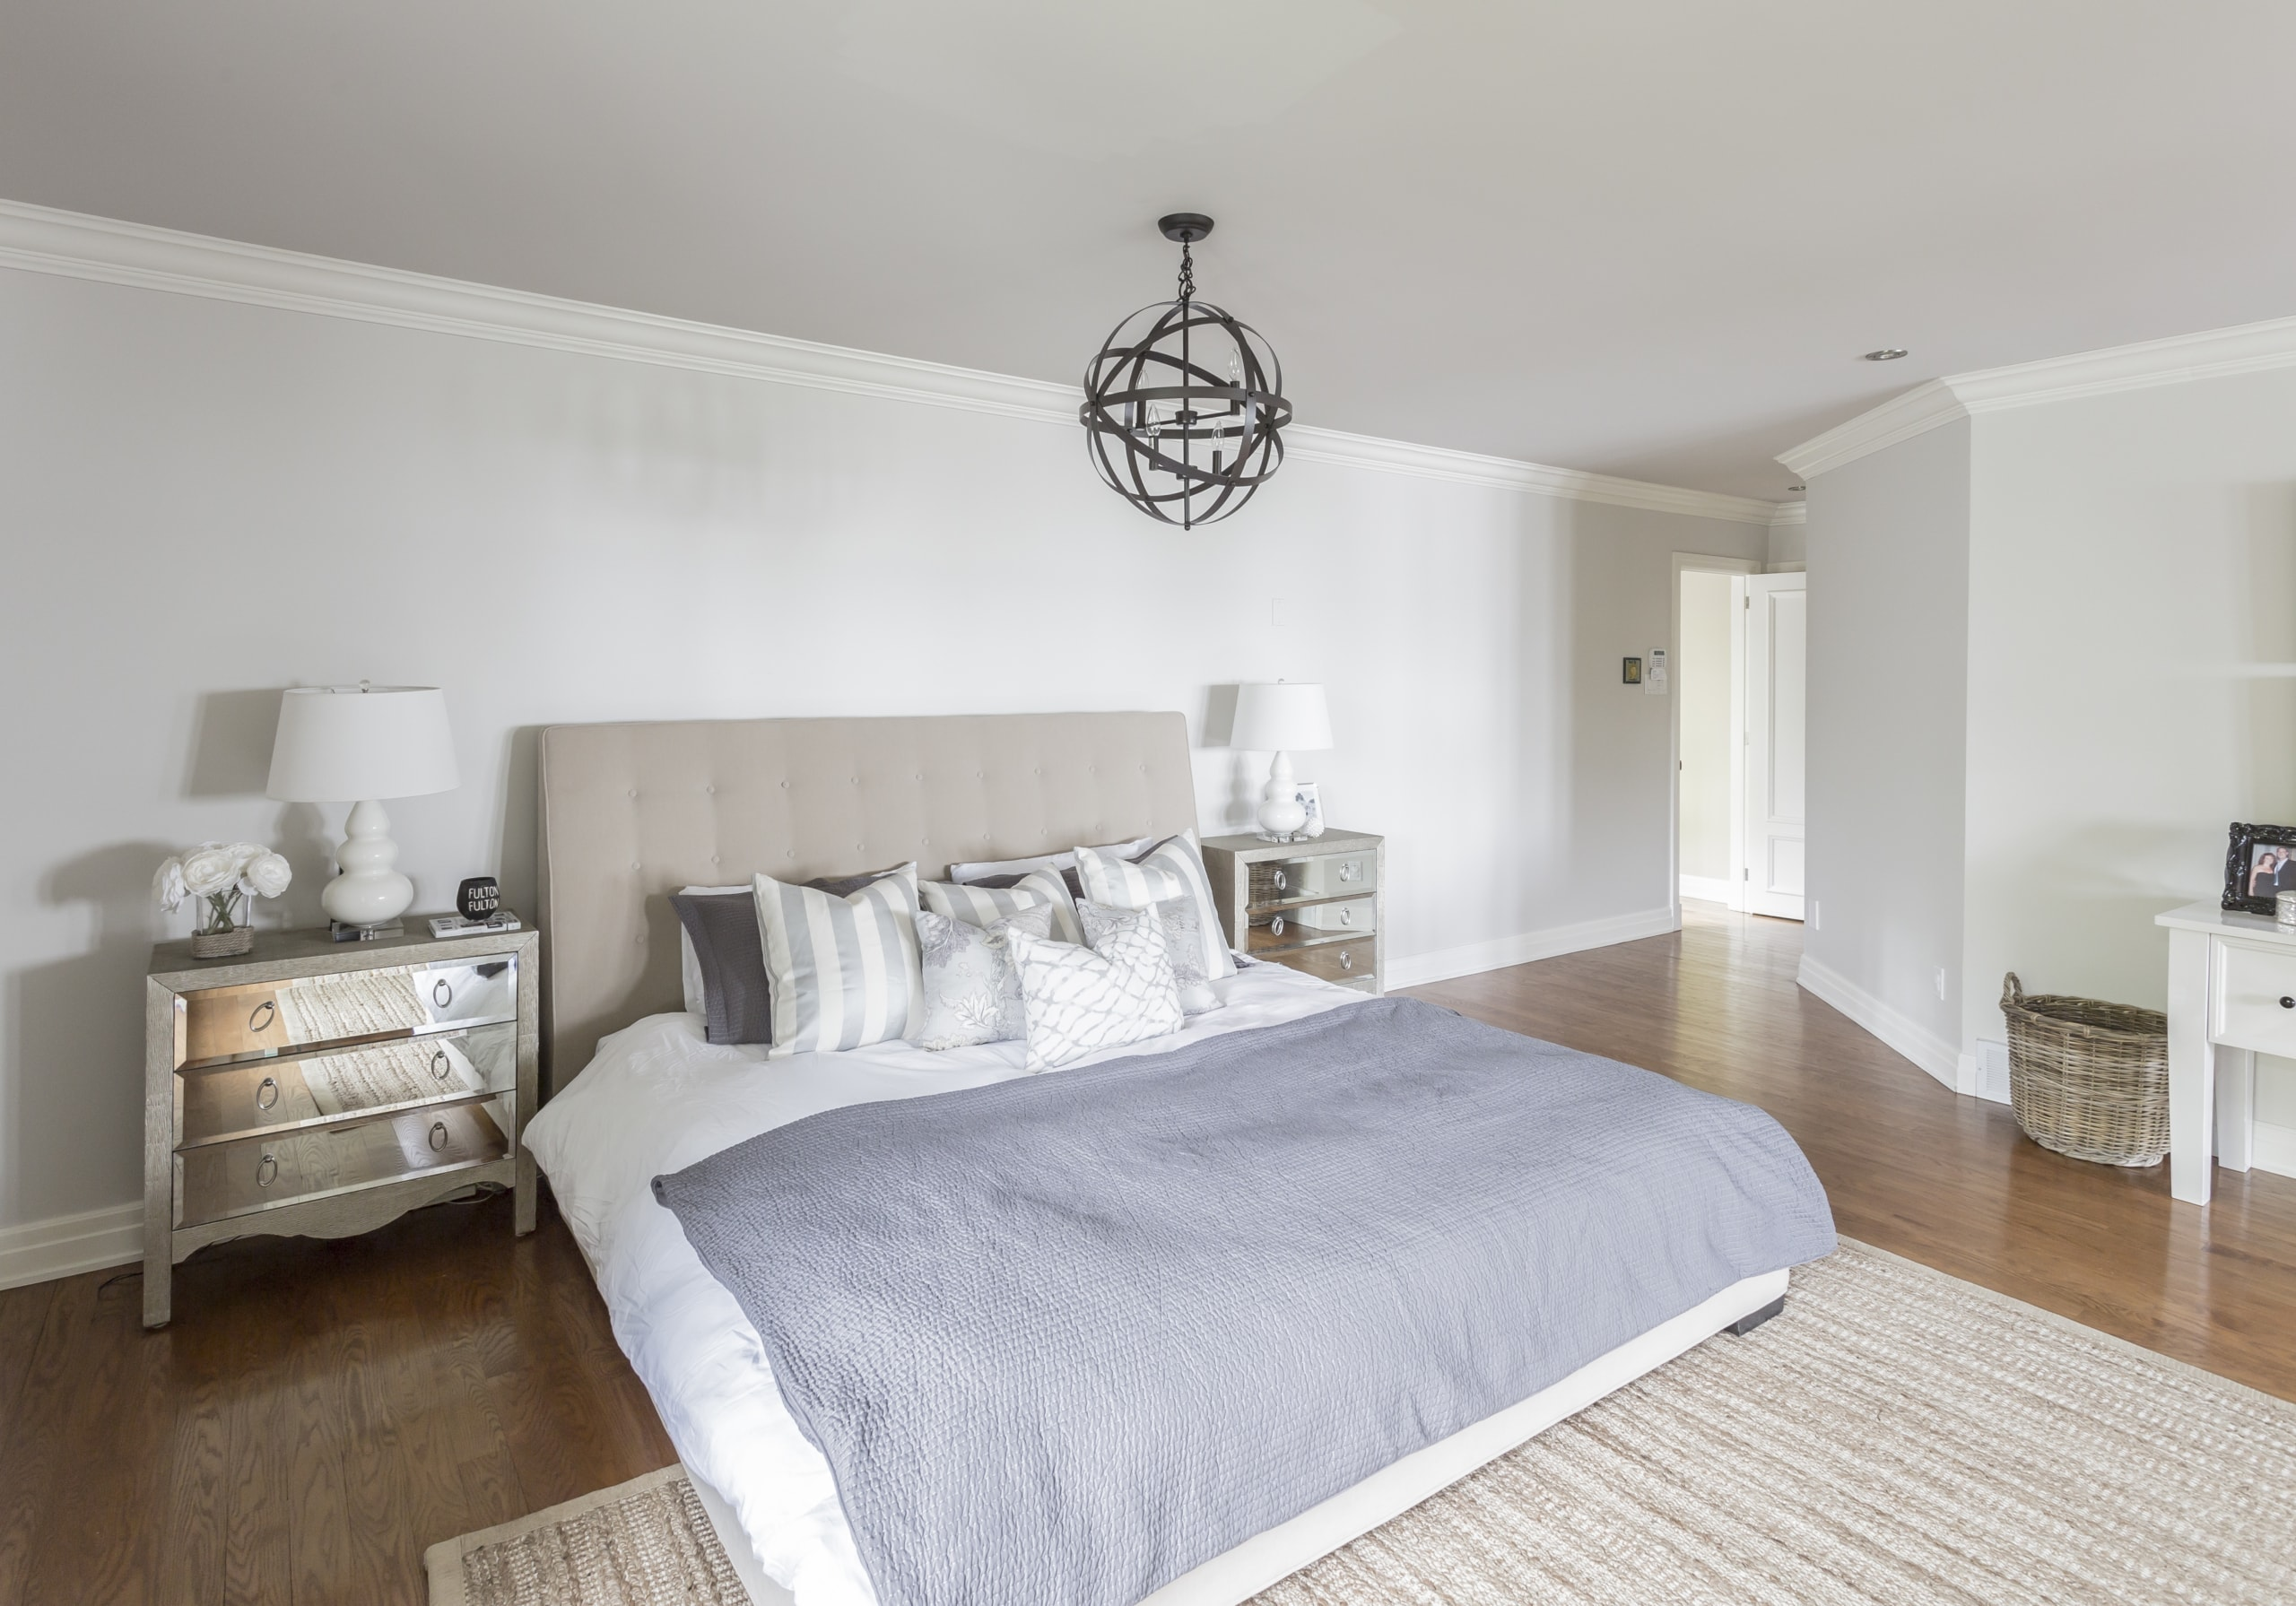 Large bed with a small, dark, spherical chandelier above it